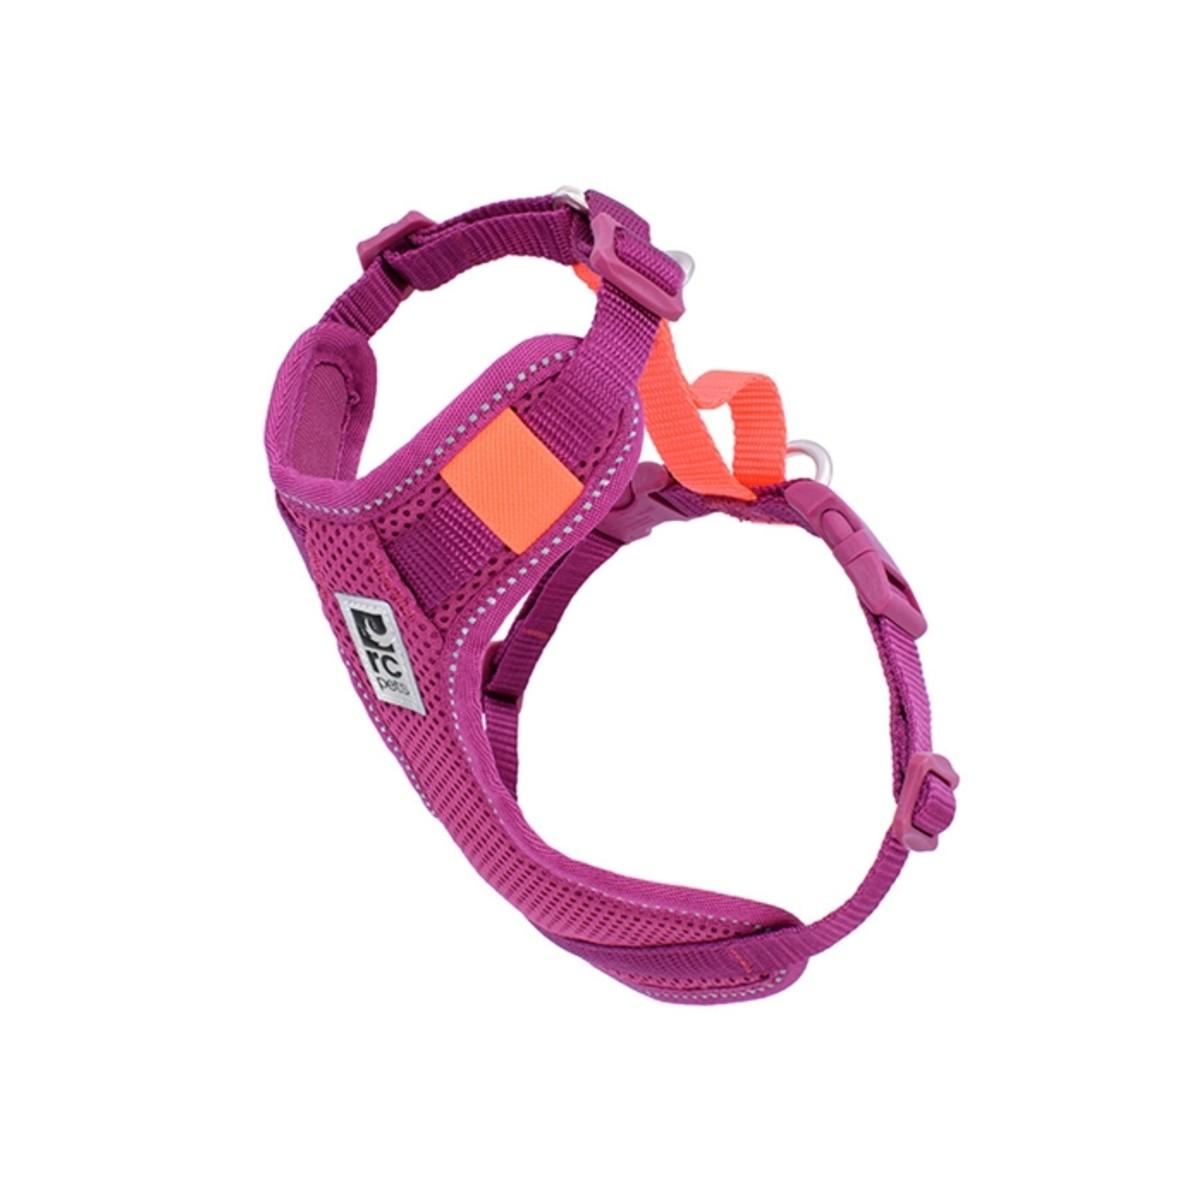 Moto Control Dog Harness - Mulberry/Hot Coral